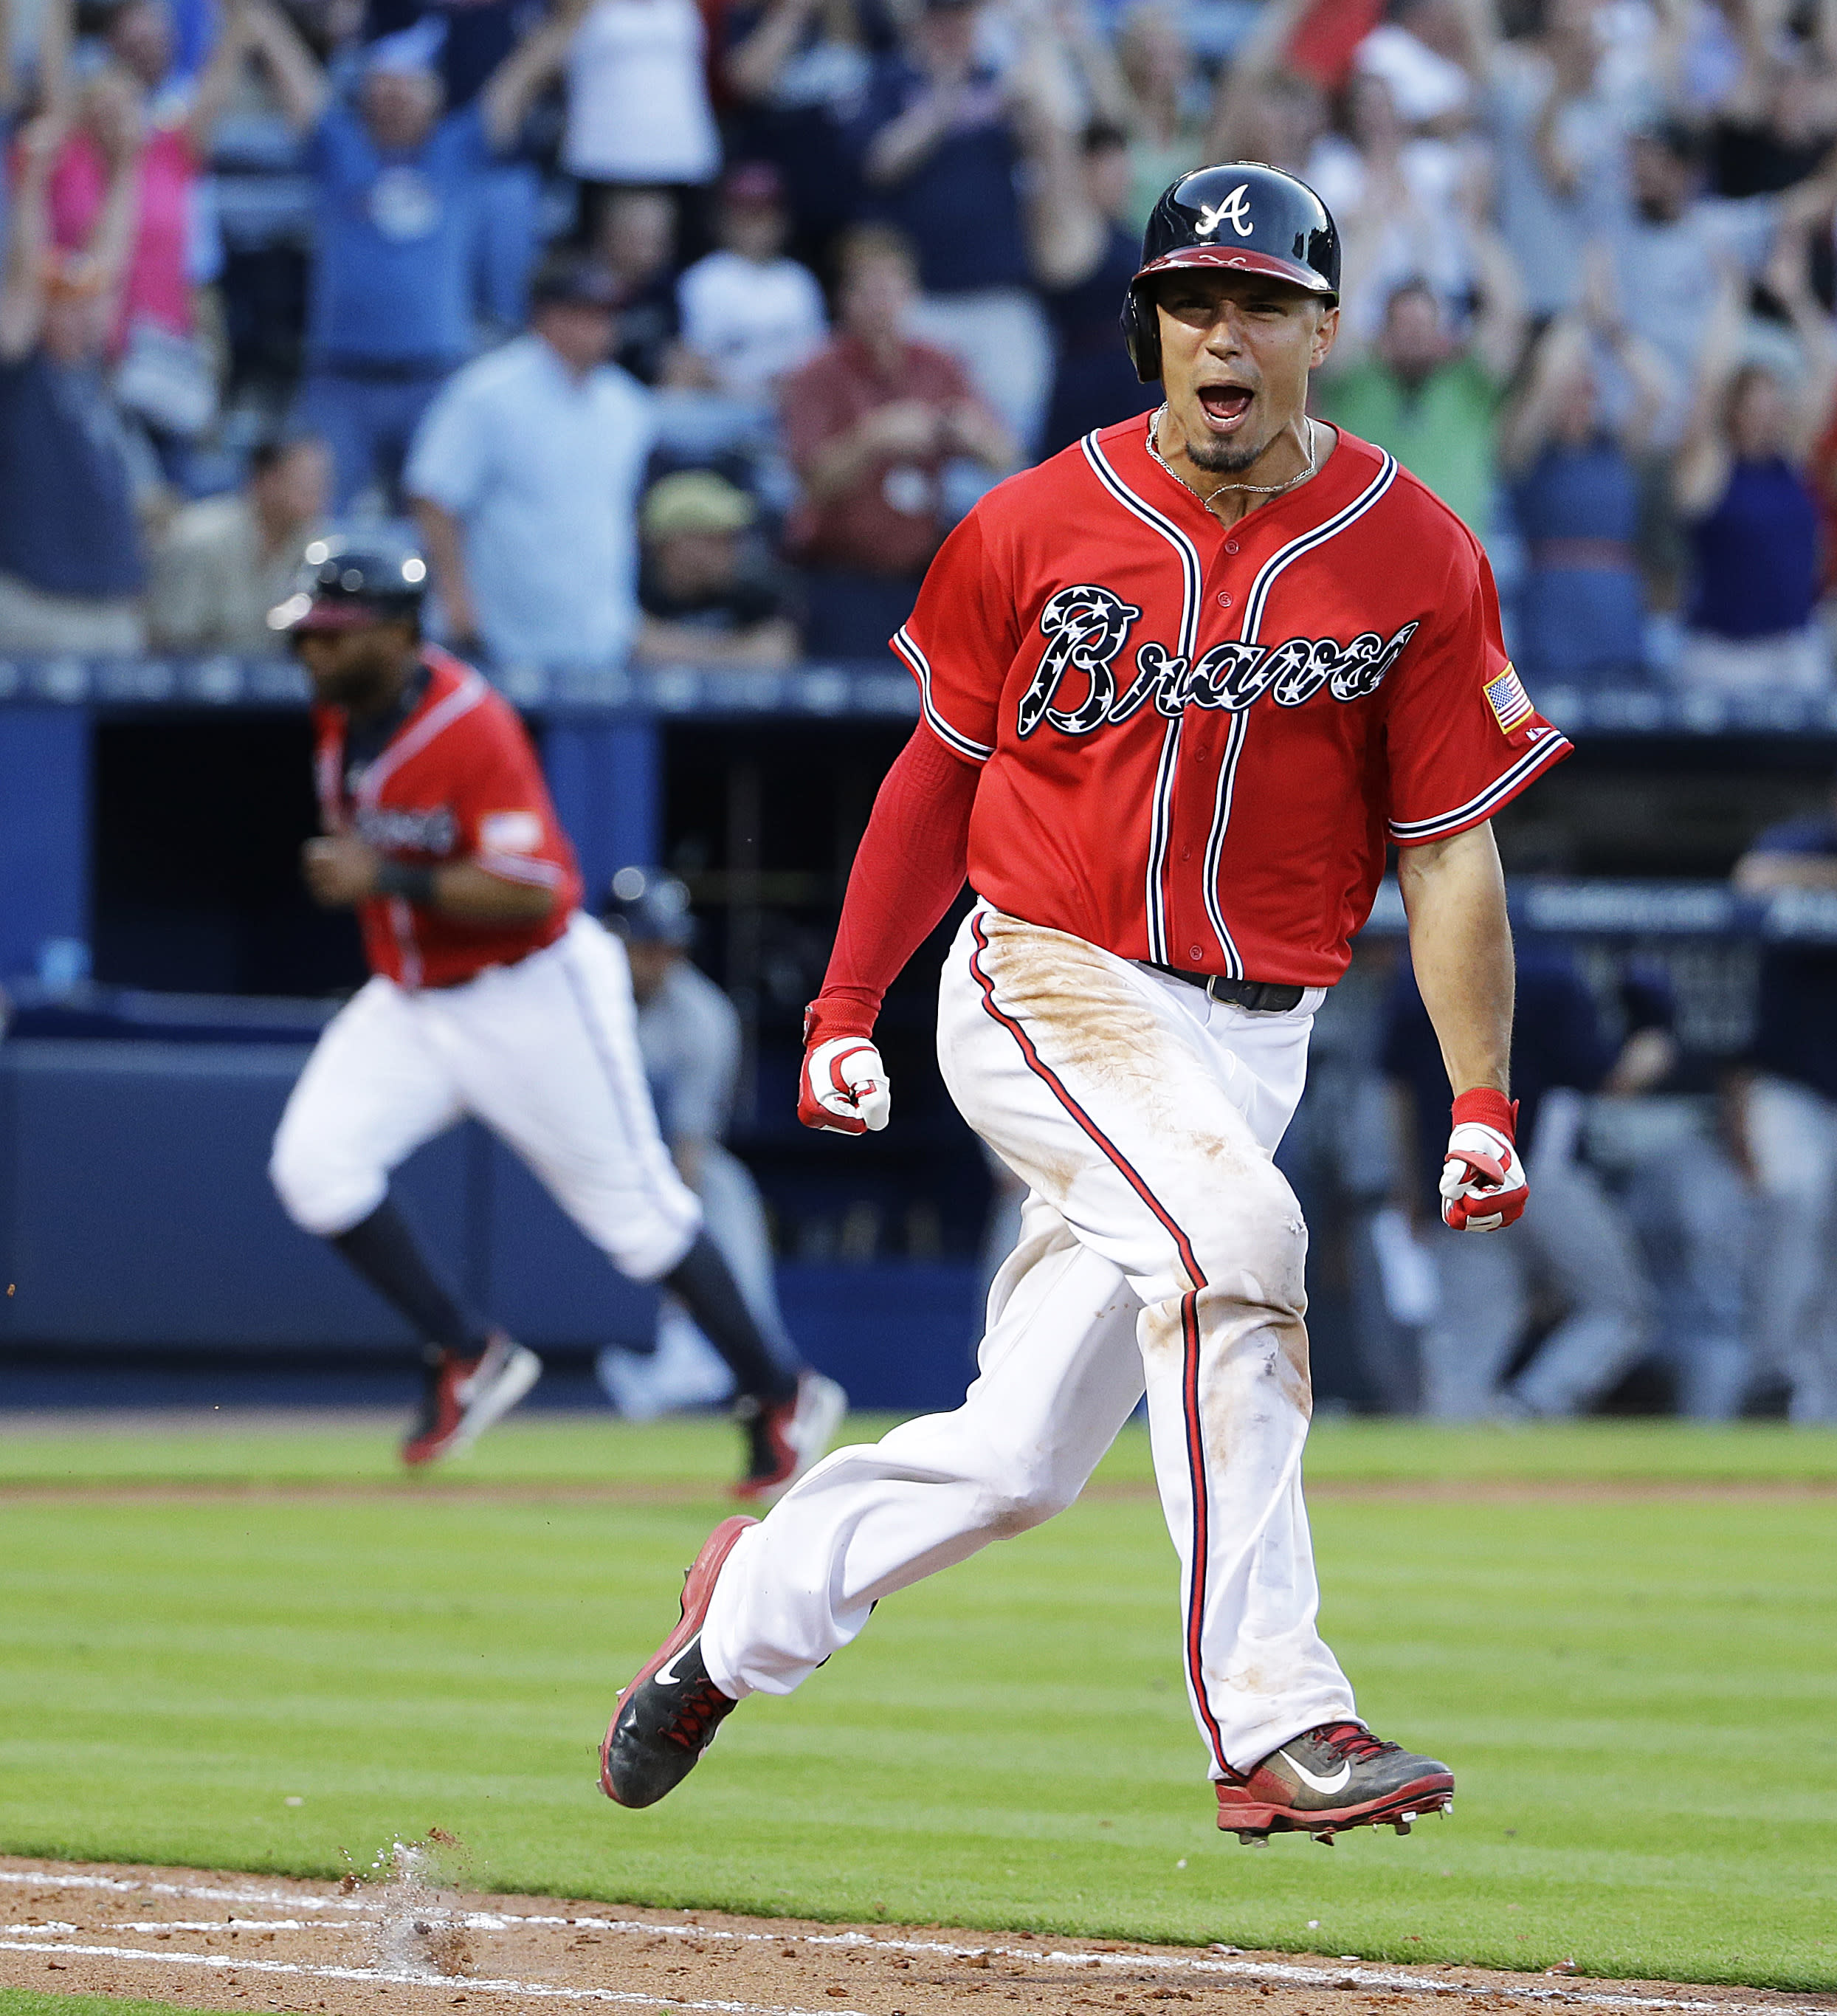 Peterson's 11th-inning single lifts Braves past Brewers, 3-2